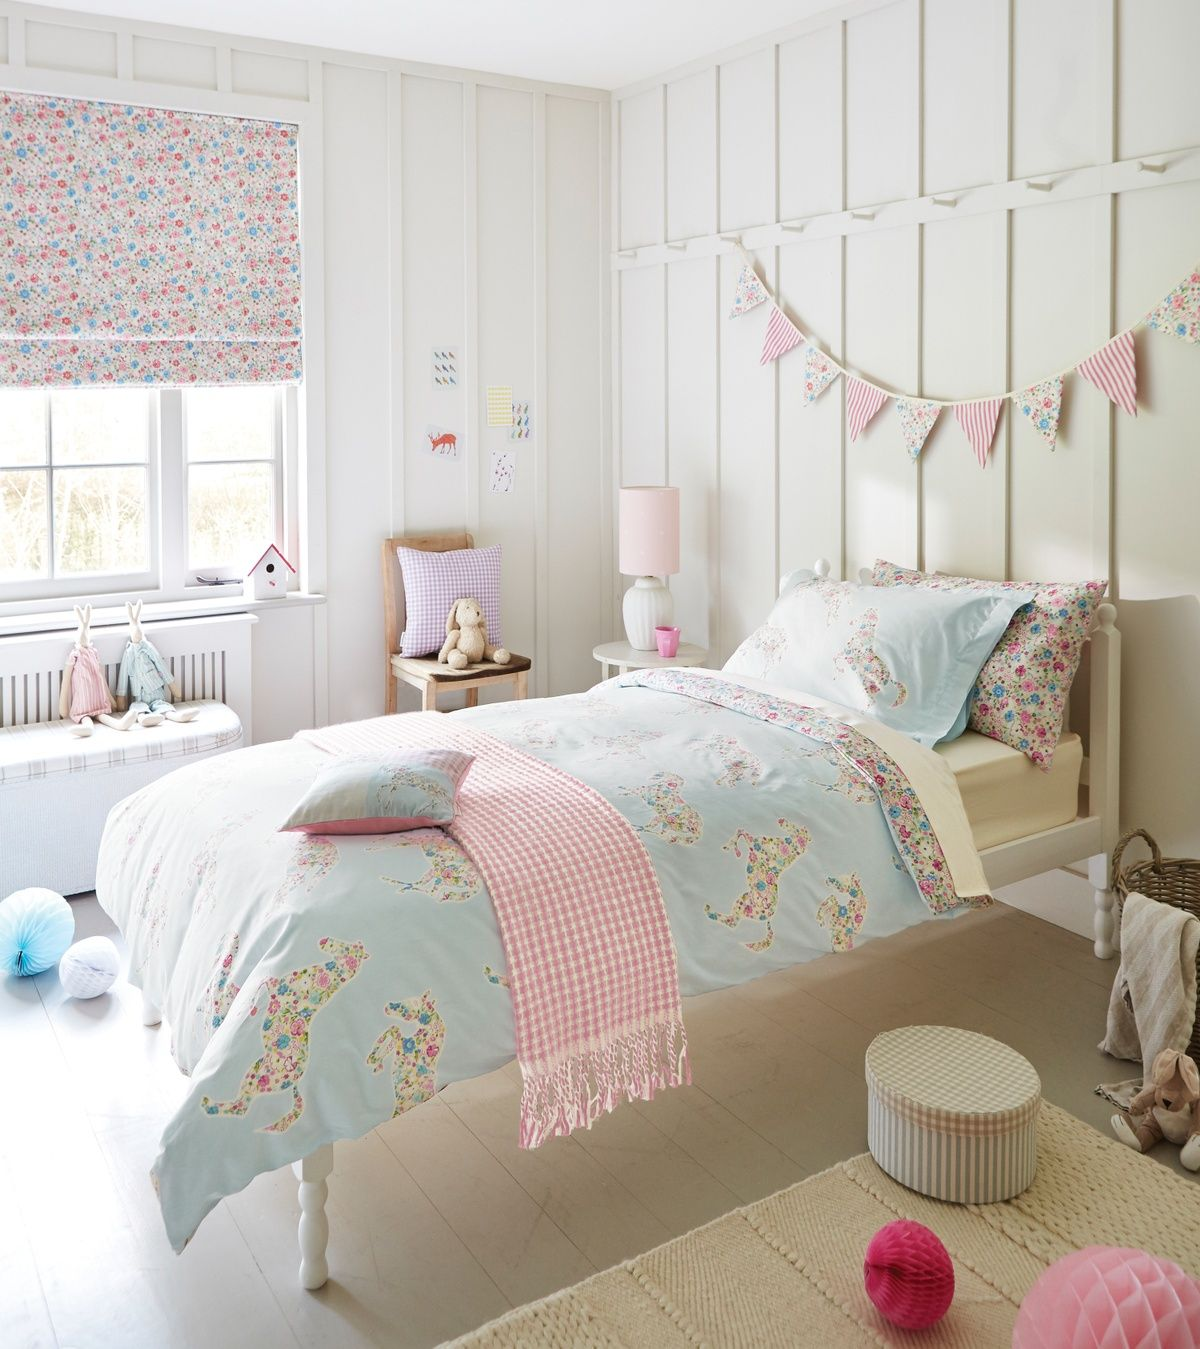 Horse bedding for girls - Gorgeous Kids Little Sanderson Pretty Ponies Bedding Girls Horse Bedding Absolutely